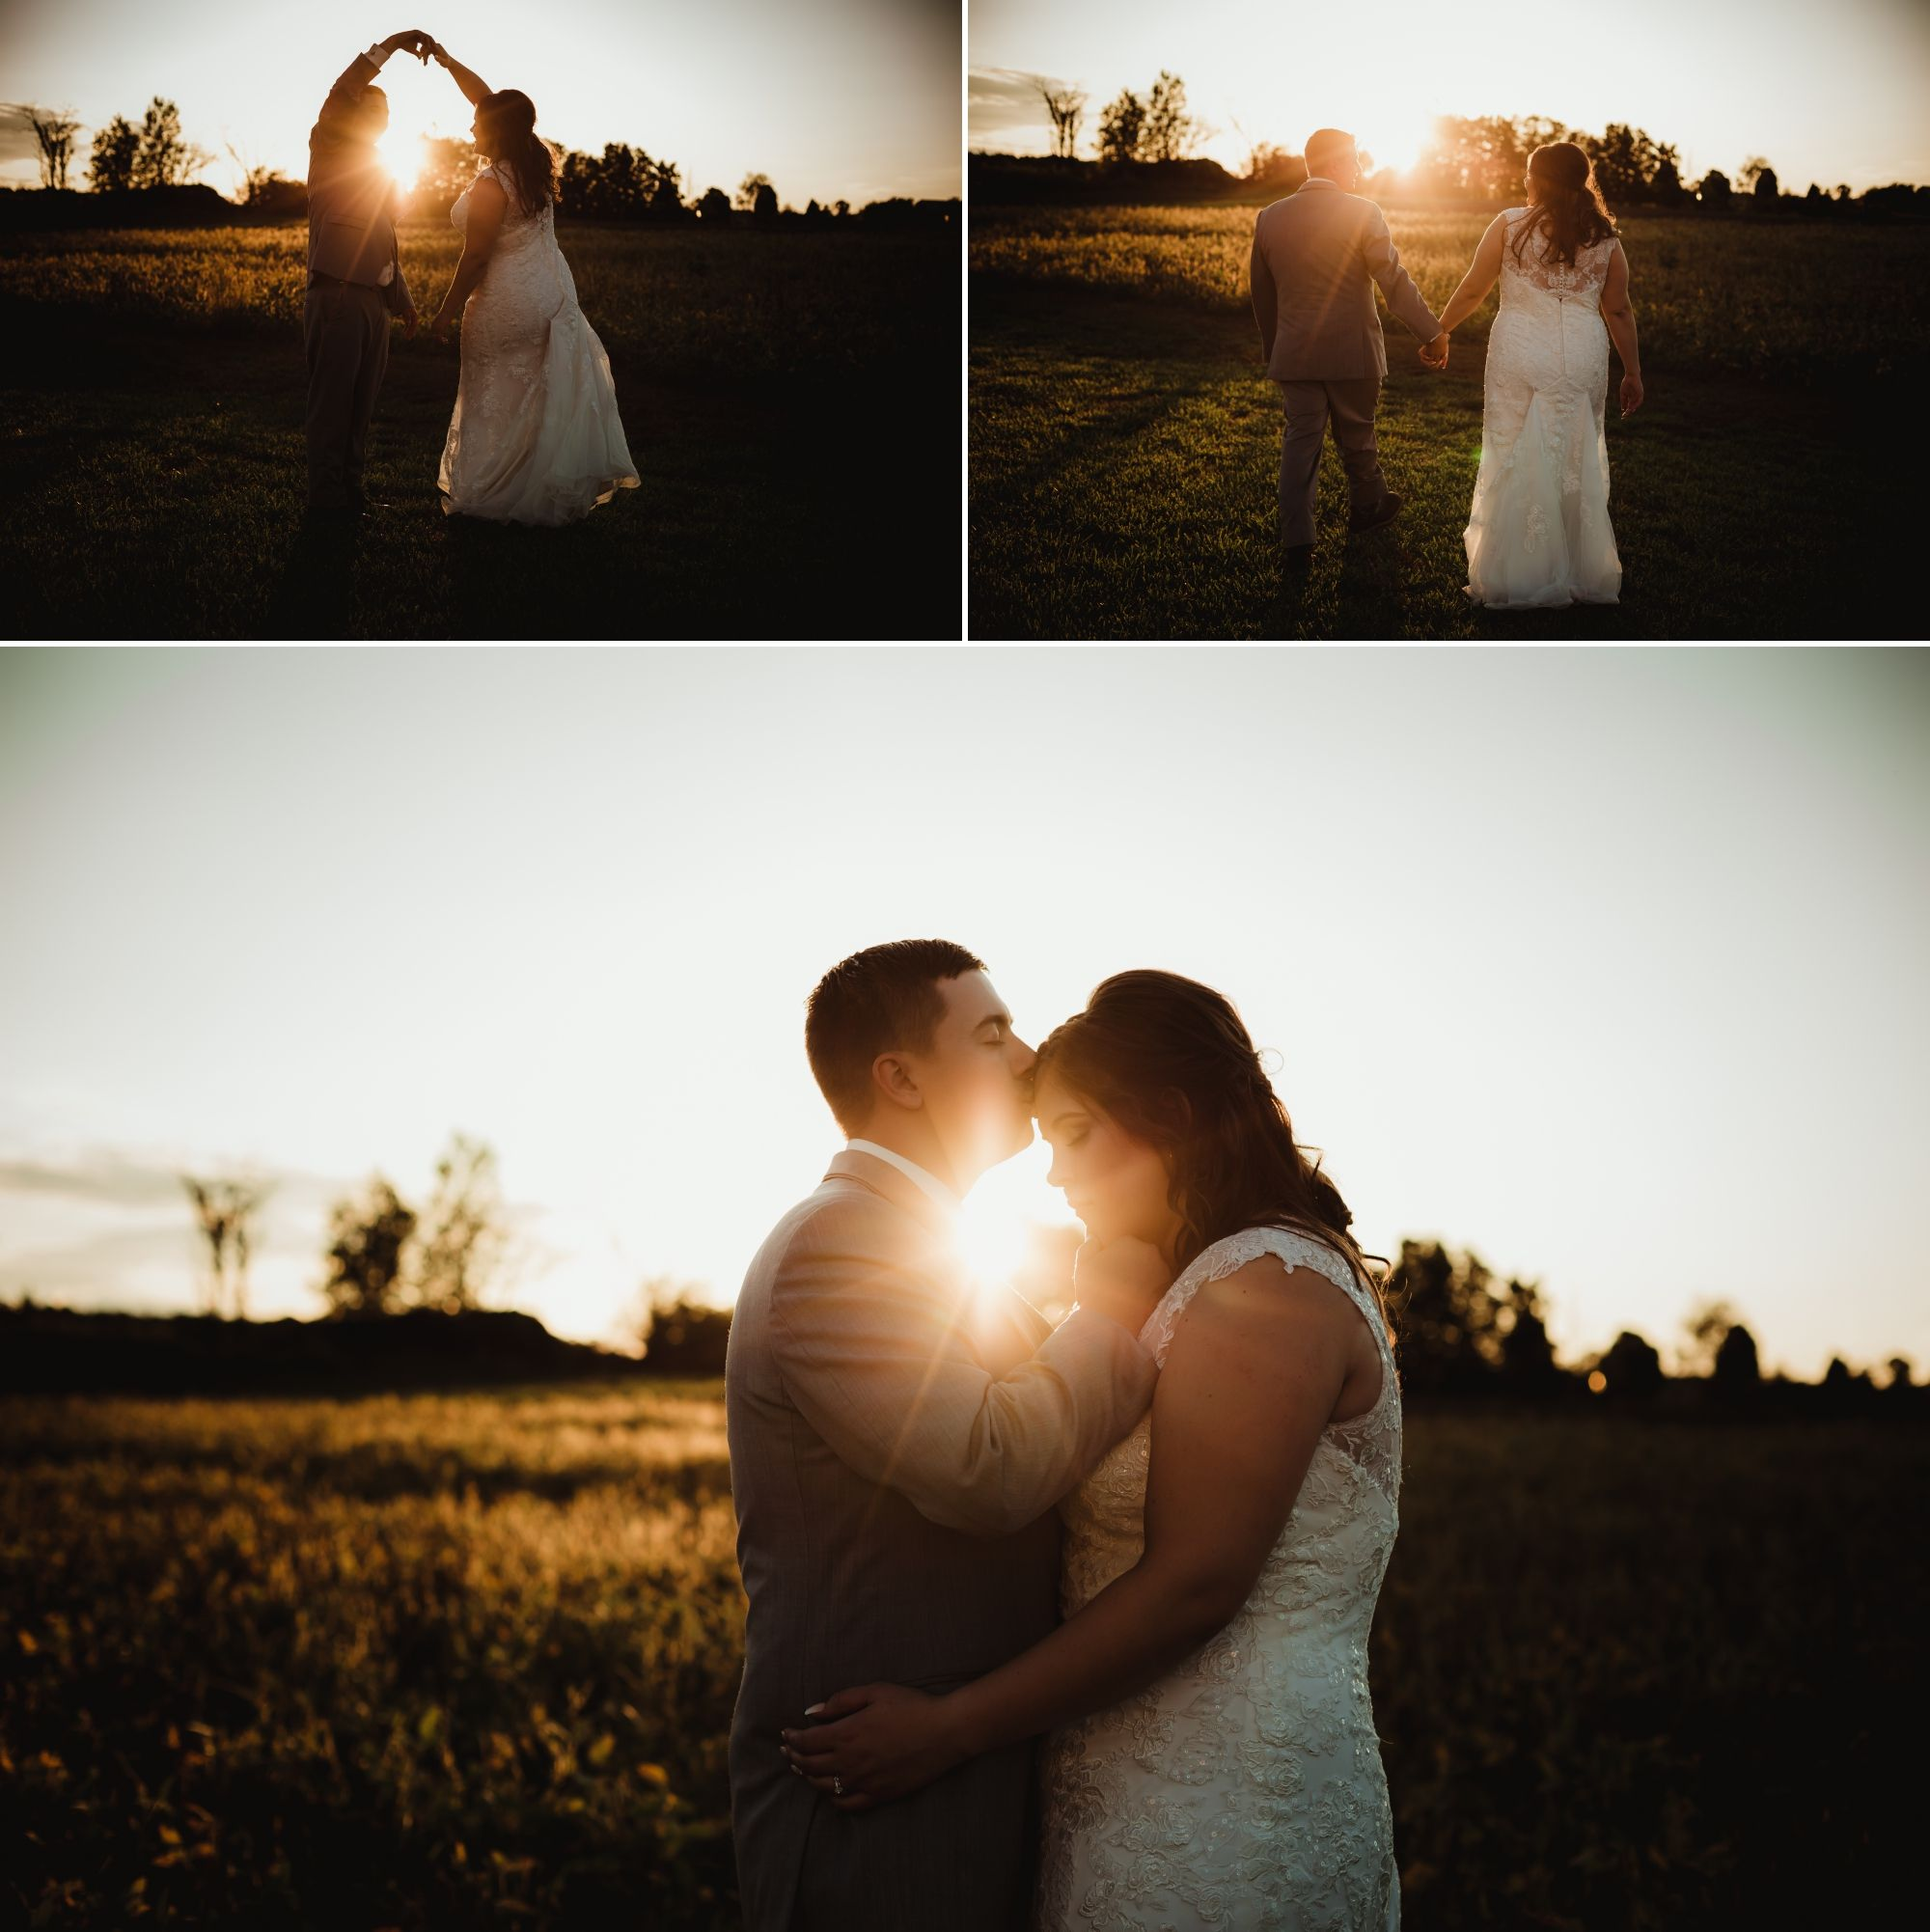 Collage of the bride and groom embracing and holding hands in front of a field with golden sunset light behind them.